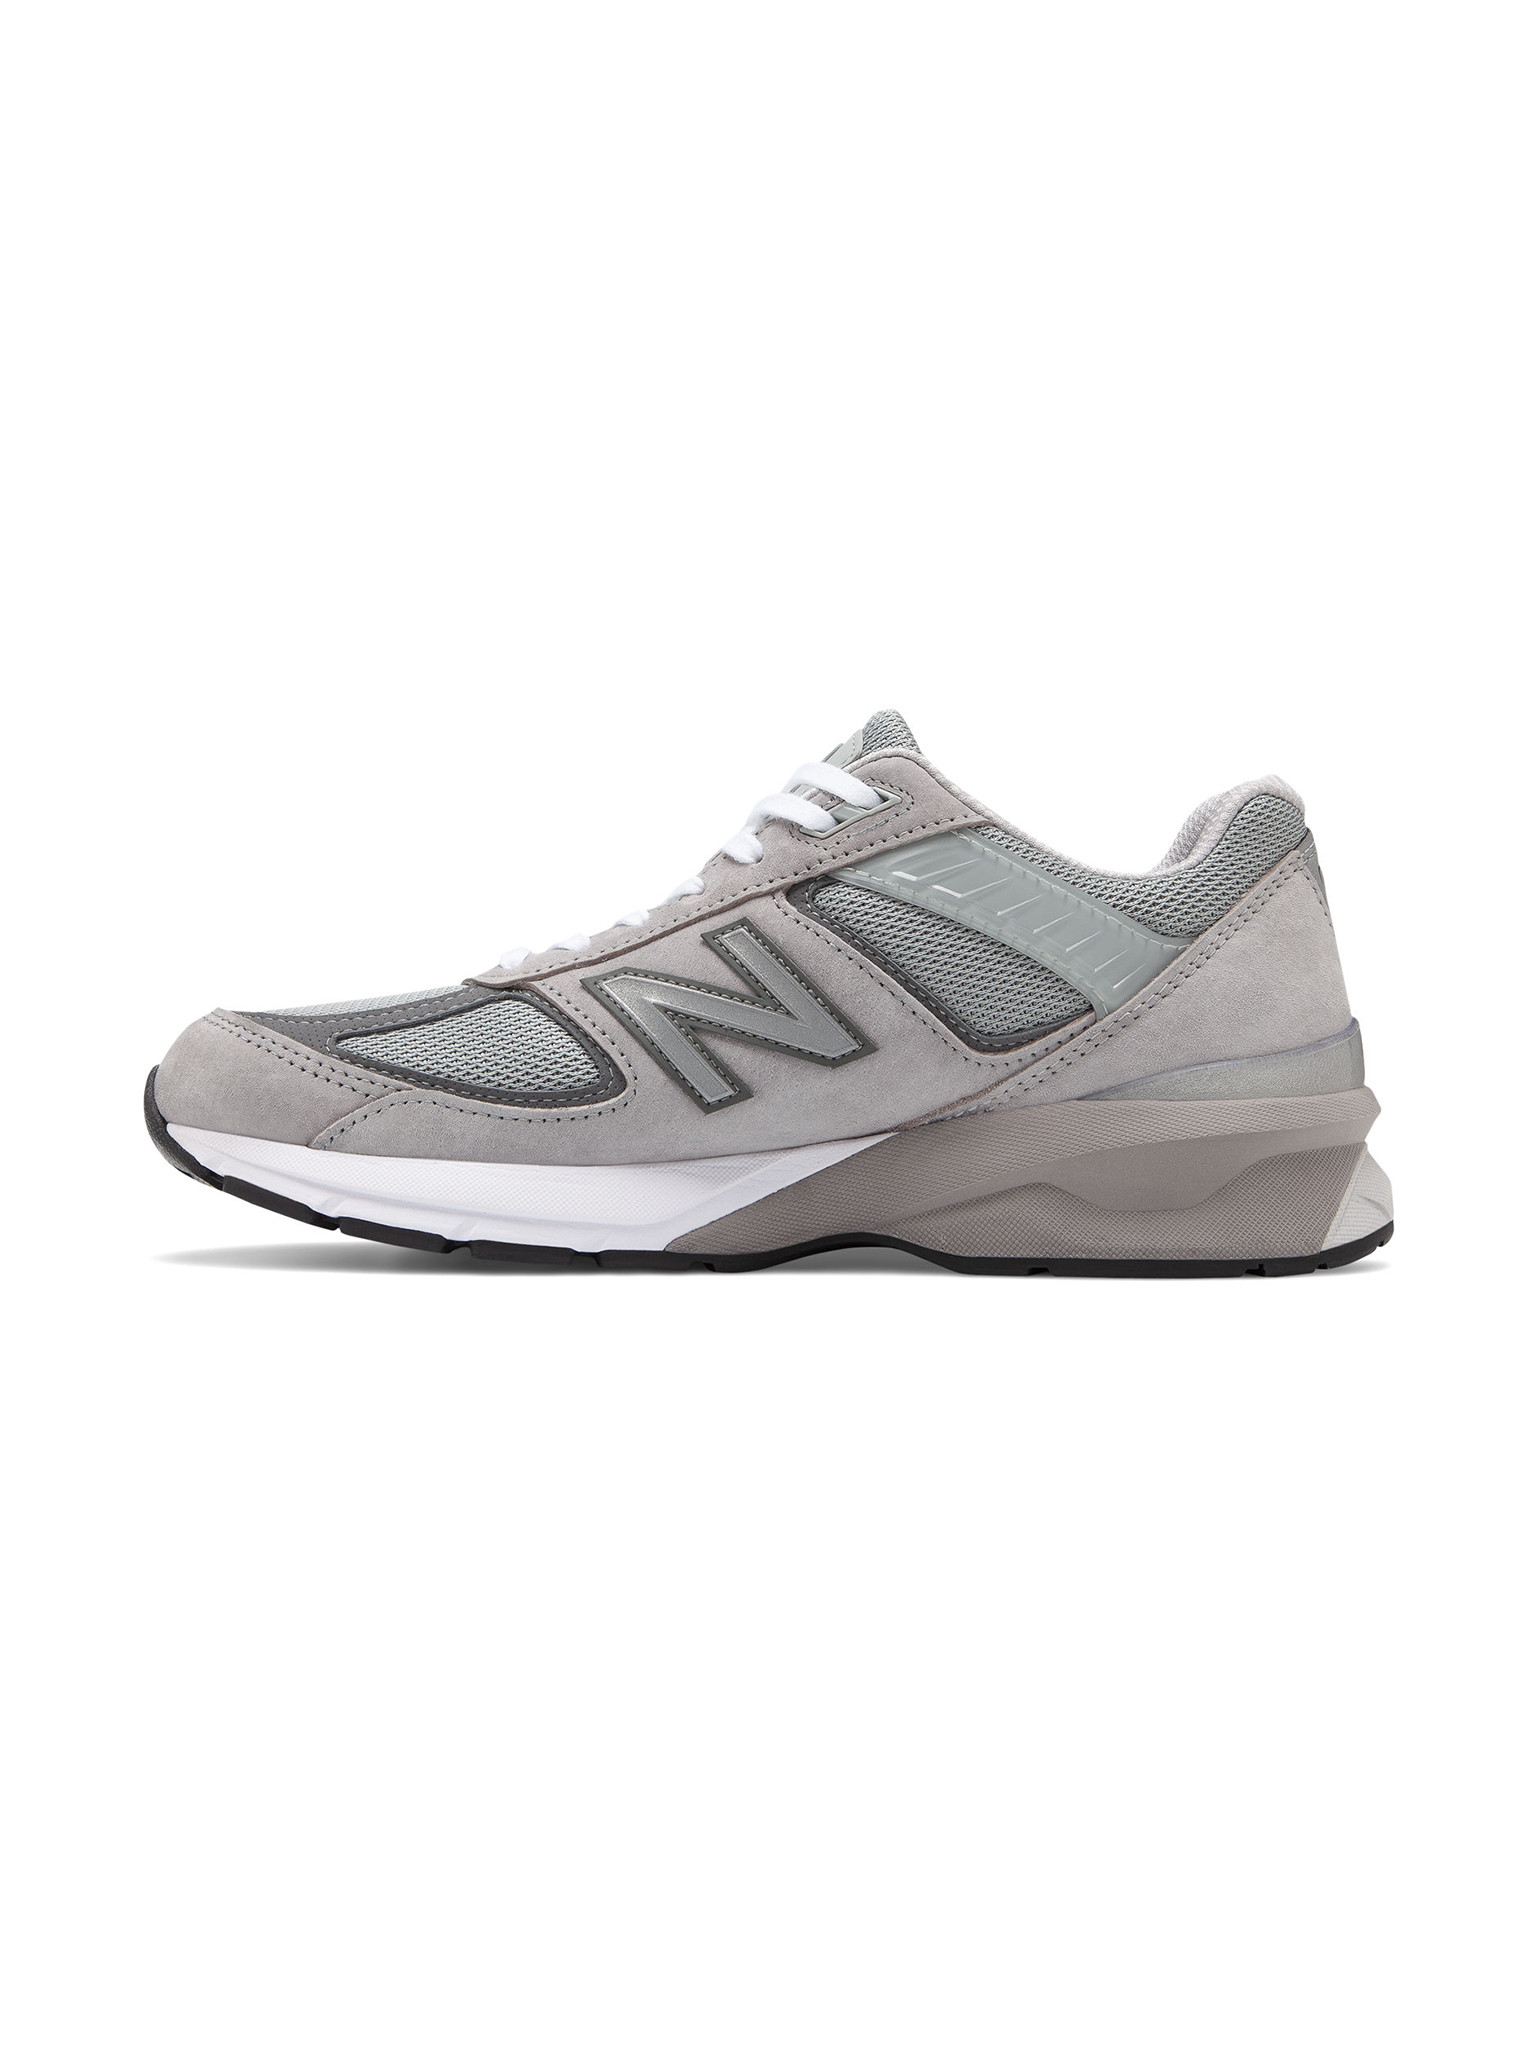 Made In US 990v5 Sneakers In Grey